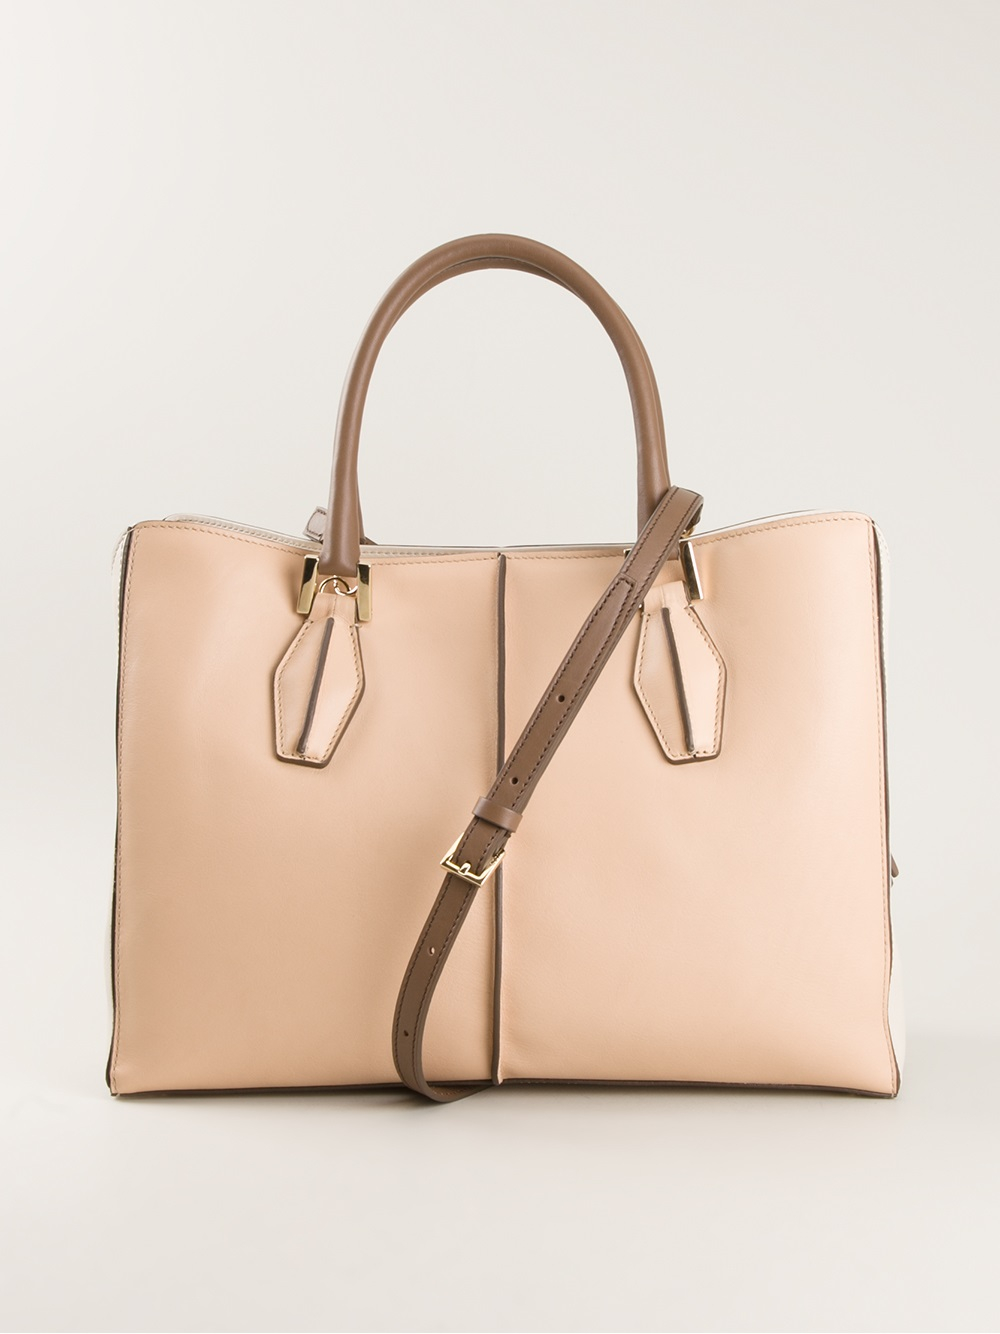 cbfbff353f2f7 Tod's D Styling Tote in Natural - Lyst